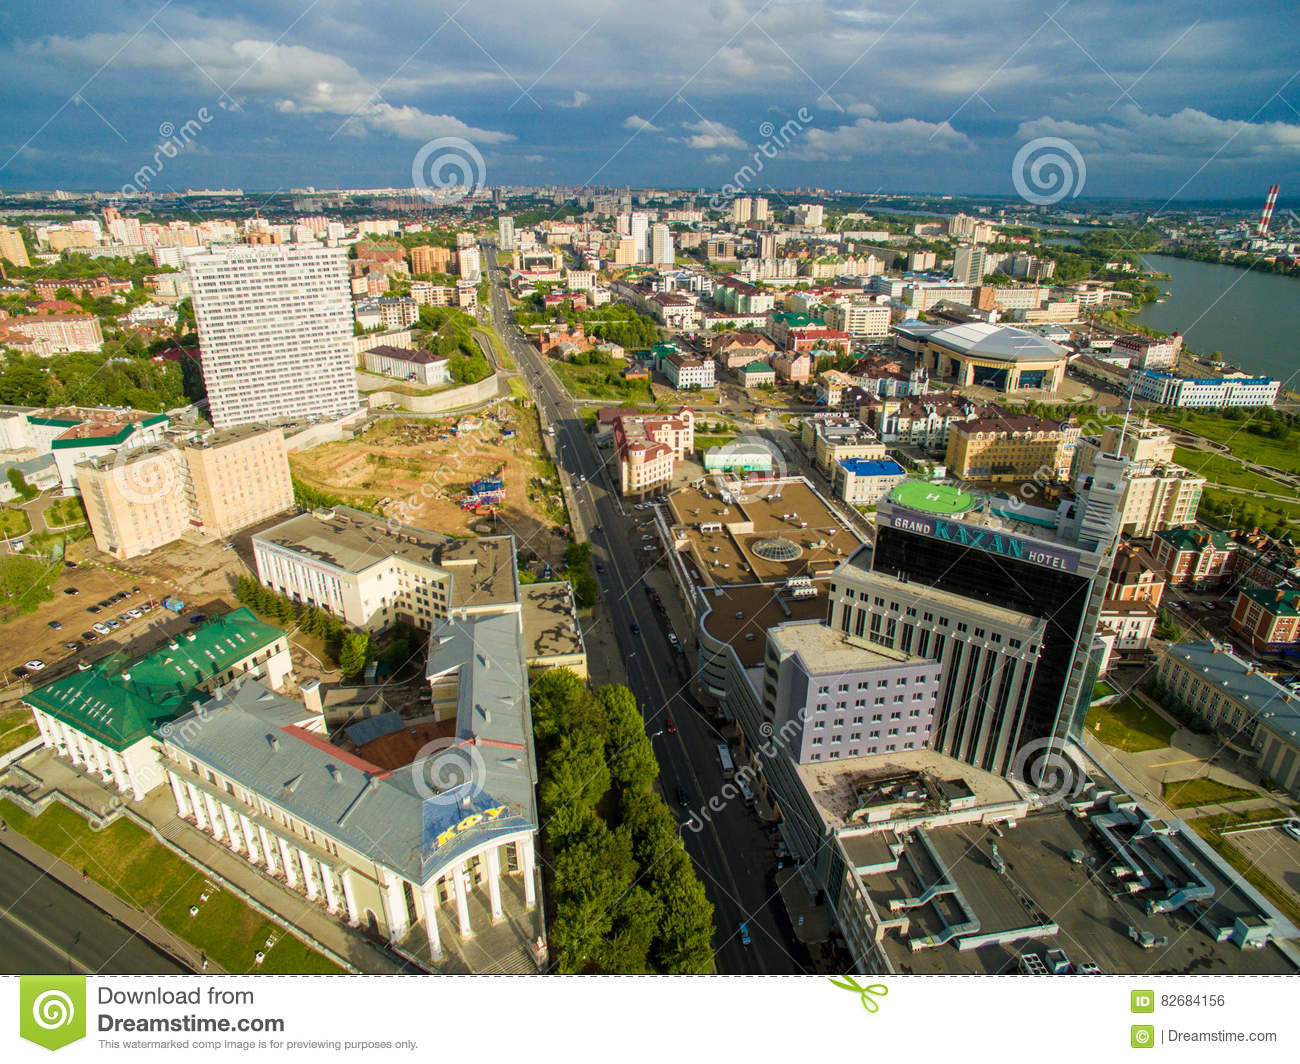 Kazan Aerial View Center Of City At Grand Hotel Stock Photo Image Of City Cityscape 82684156